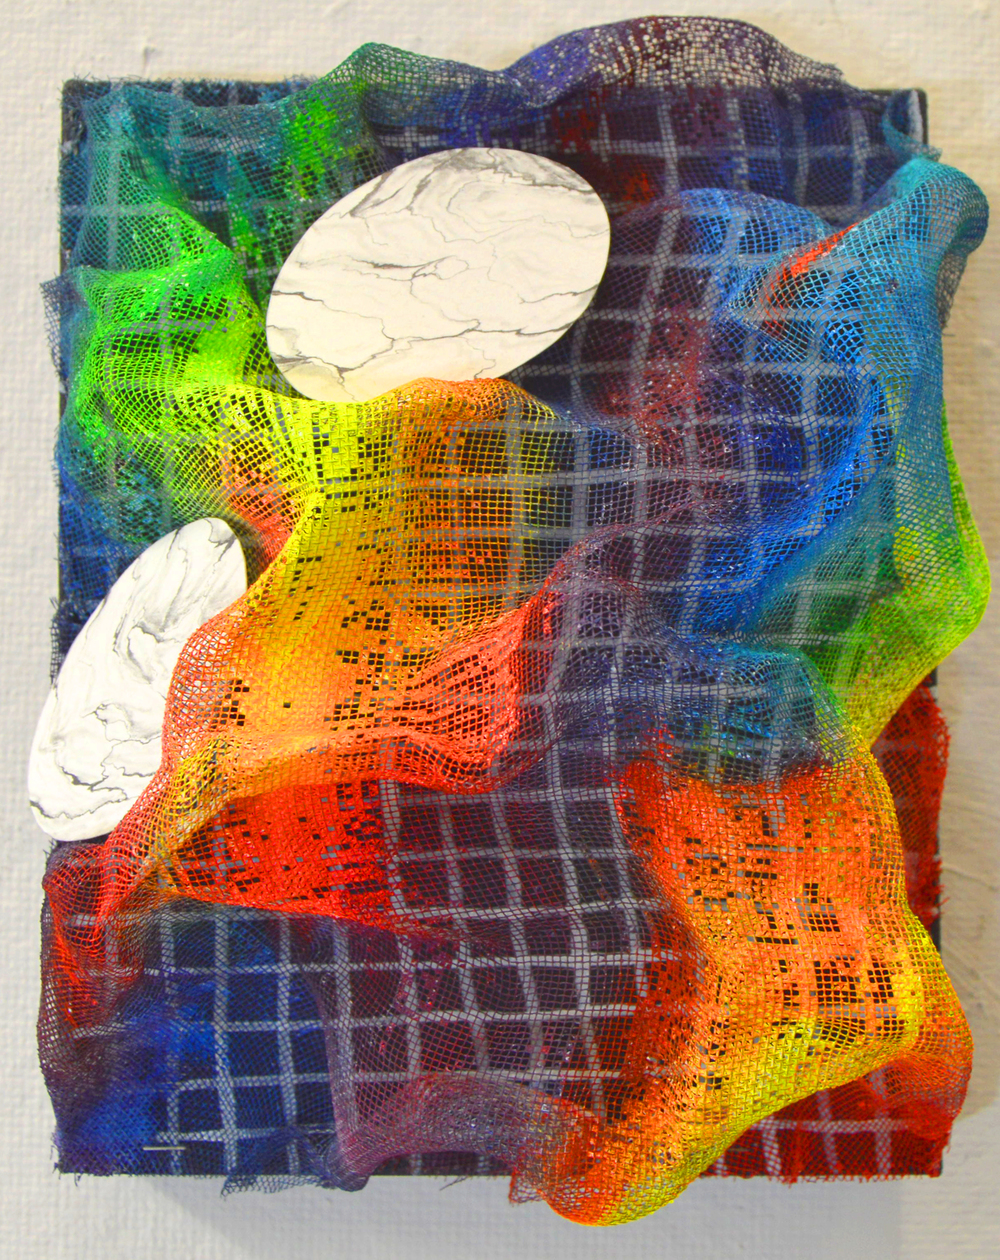 Untitled, 8''x10'', Graphite, gouache, wire mesh, cut paper and enamel on canvas, 2015